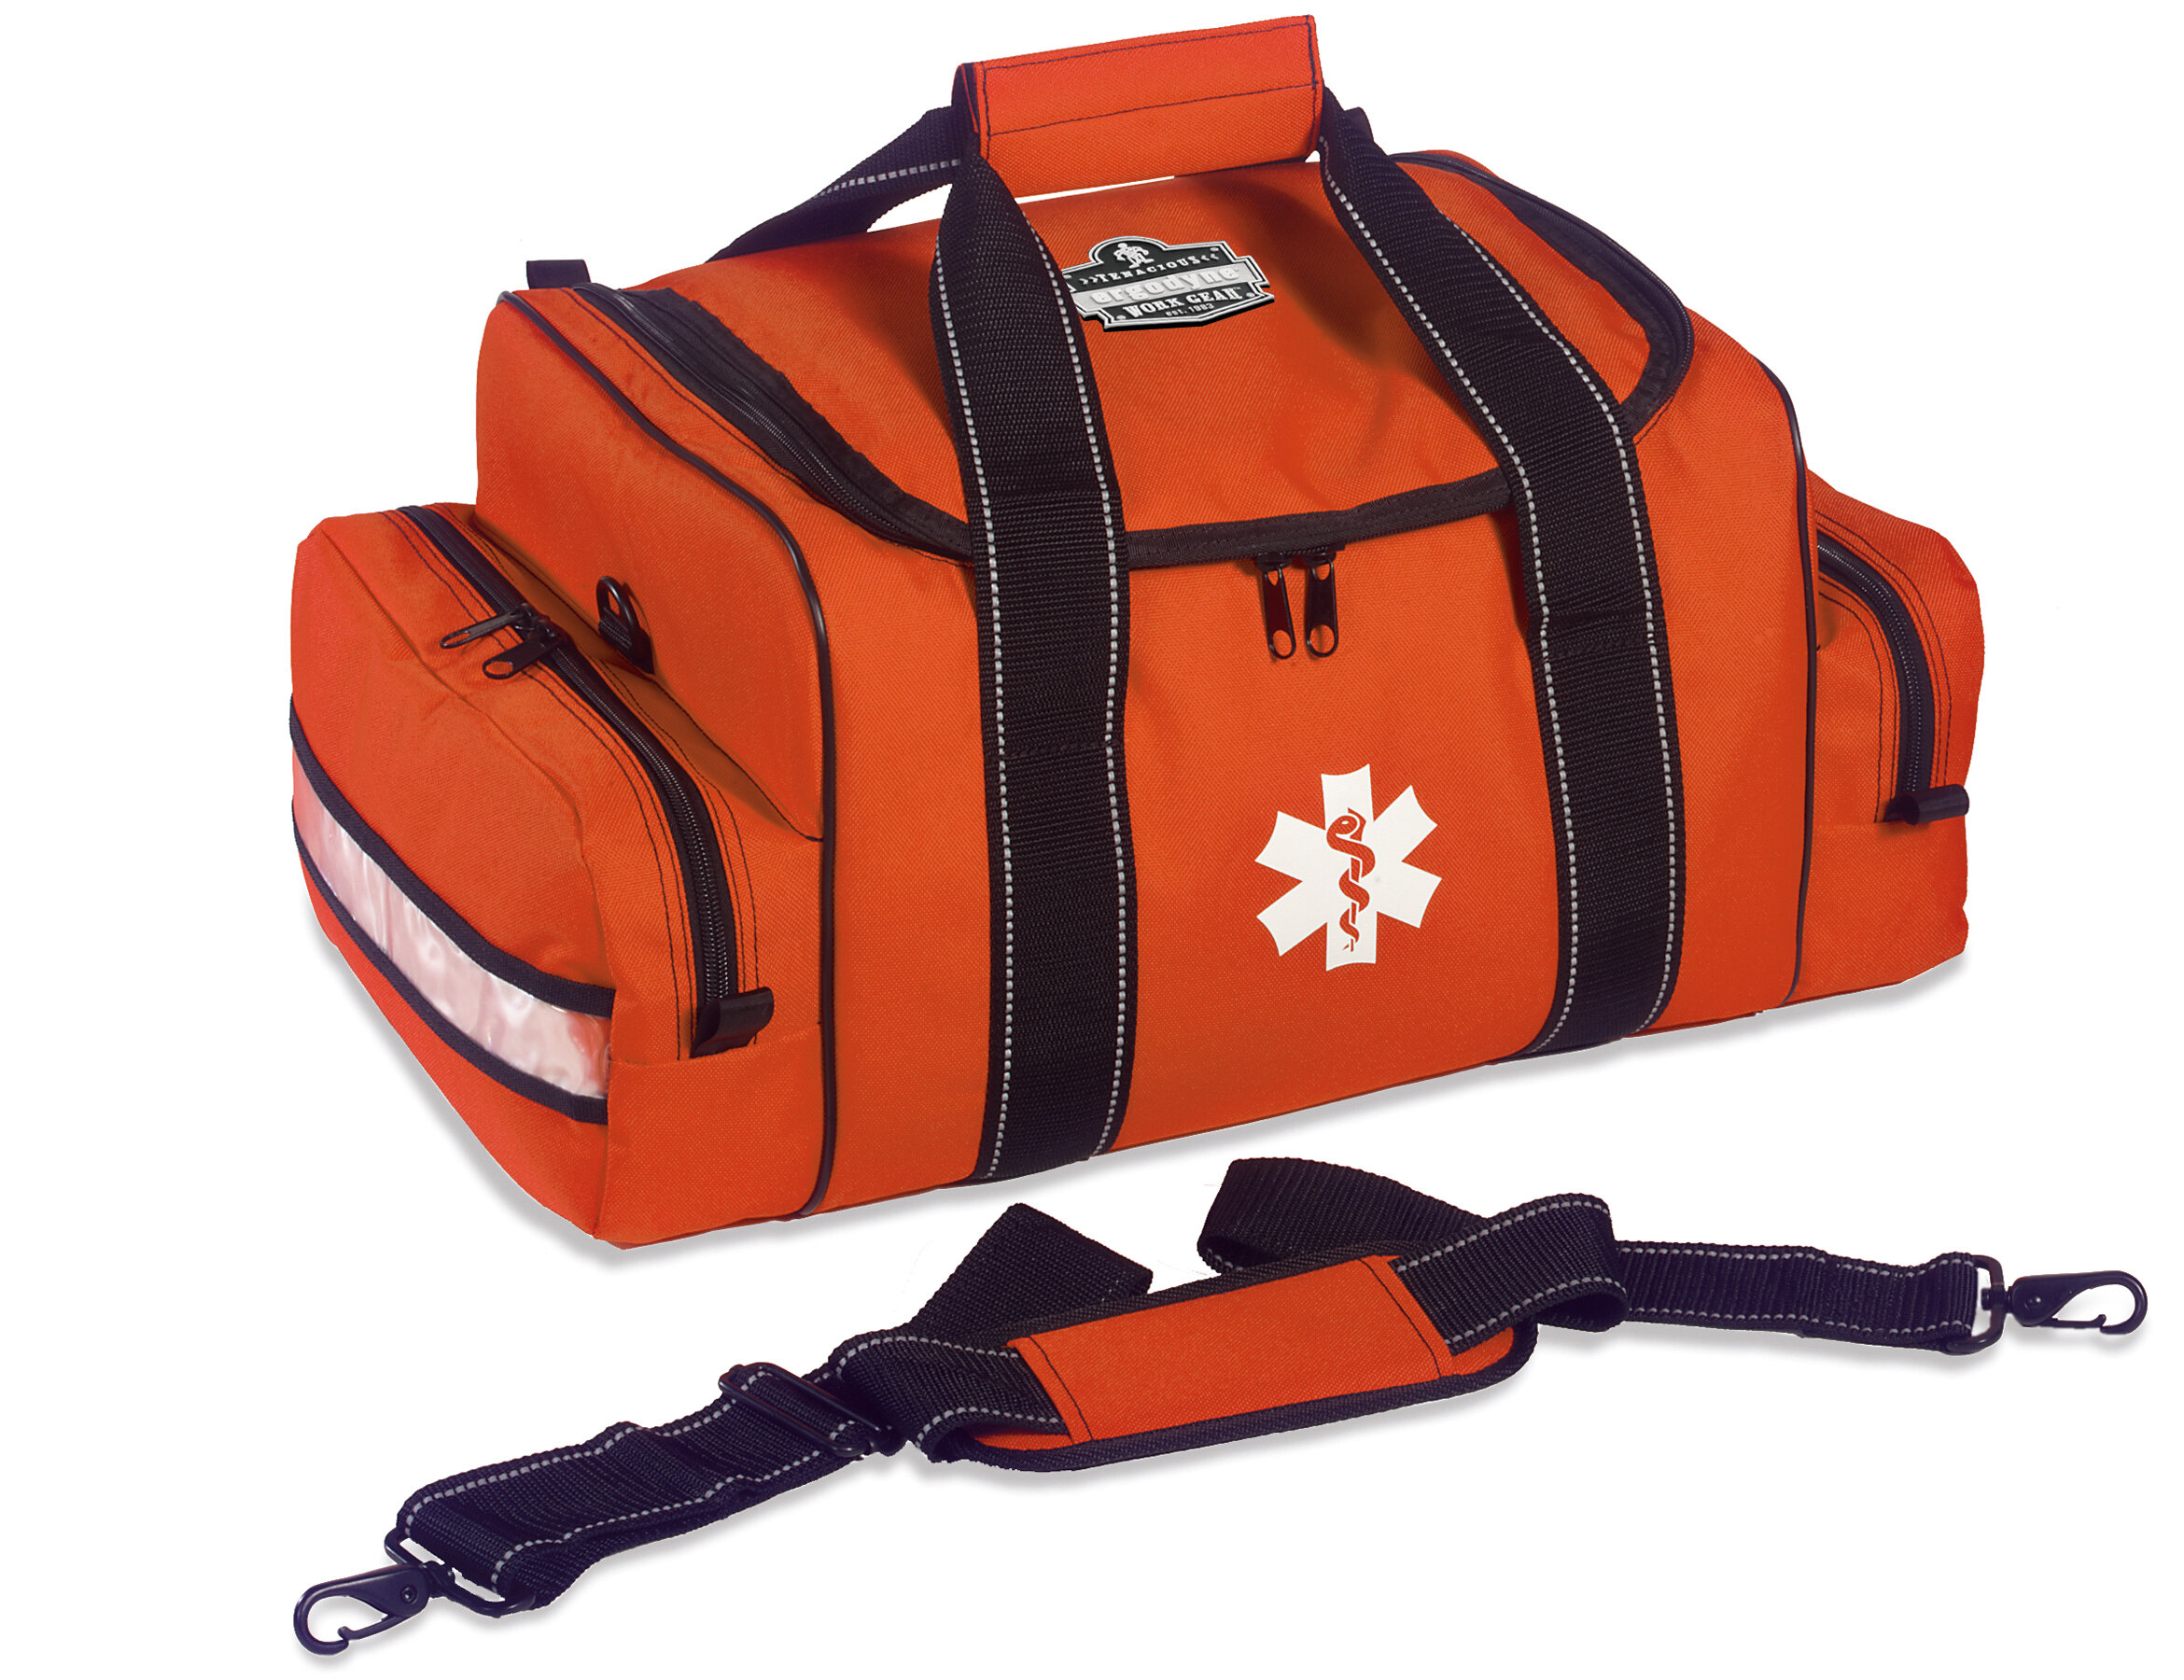 35ca10a7e11b Arsenal 5210 Large Trauma Bag